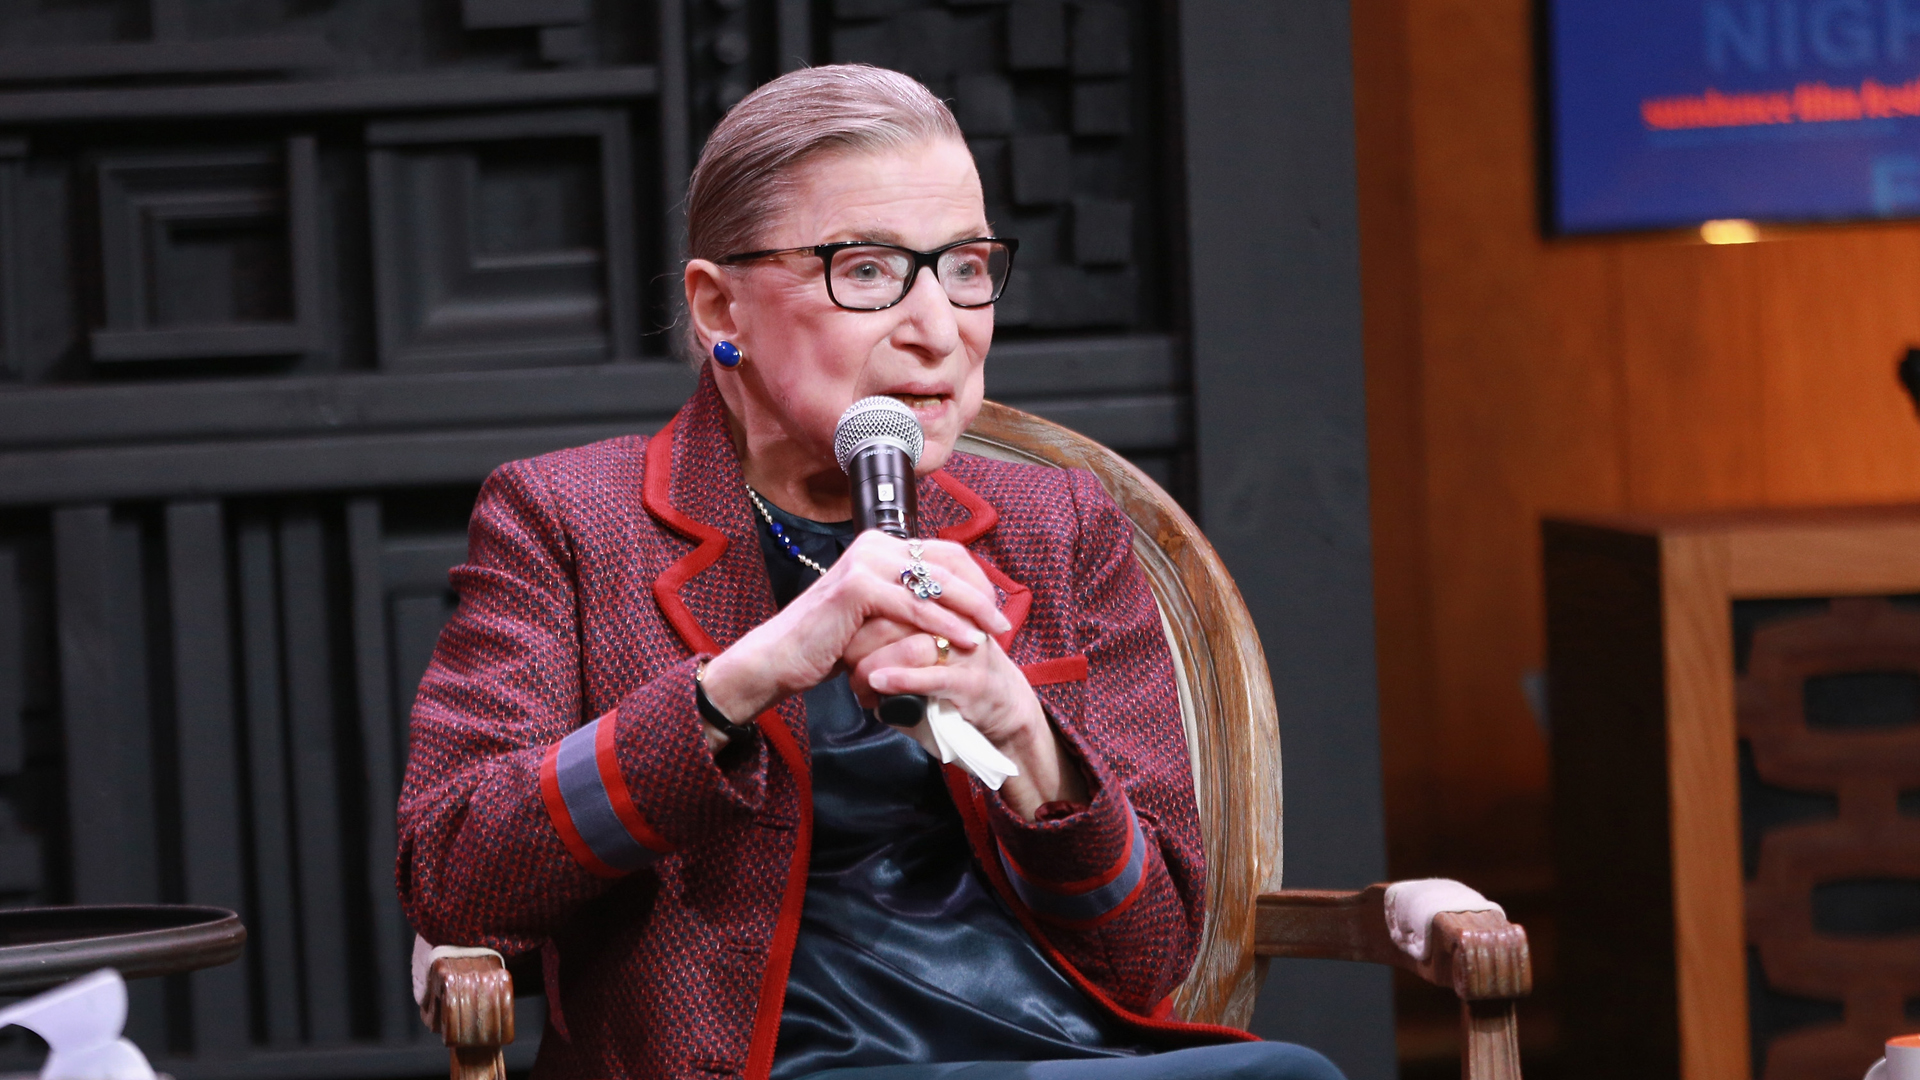 Ruth Bader Ginsburg speaks during the Cinema Cafe with Justice Ruth Bader Ginsburg and Nina Totenberg during the 2018 Sundance Film Festival at Filmmaker Lodge on January 21, 2018 in Park City, Utah. (Credit: Robin Marchant/Getty Images)